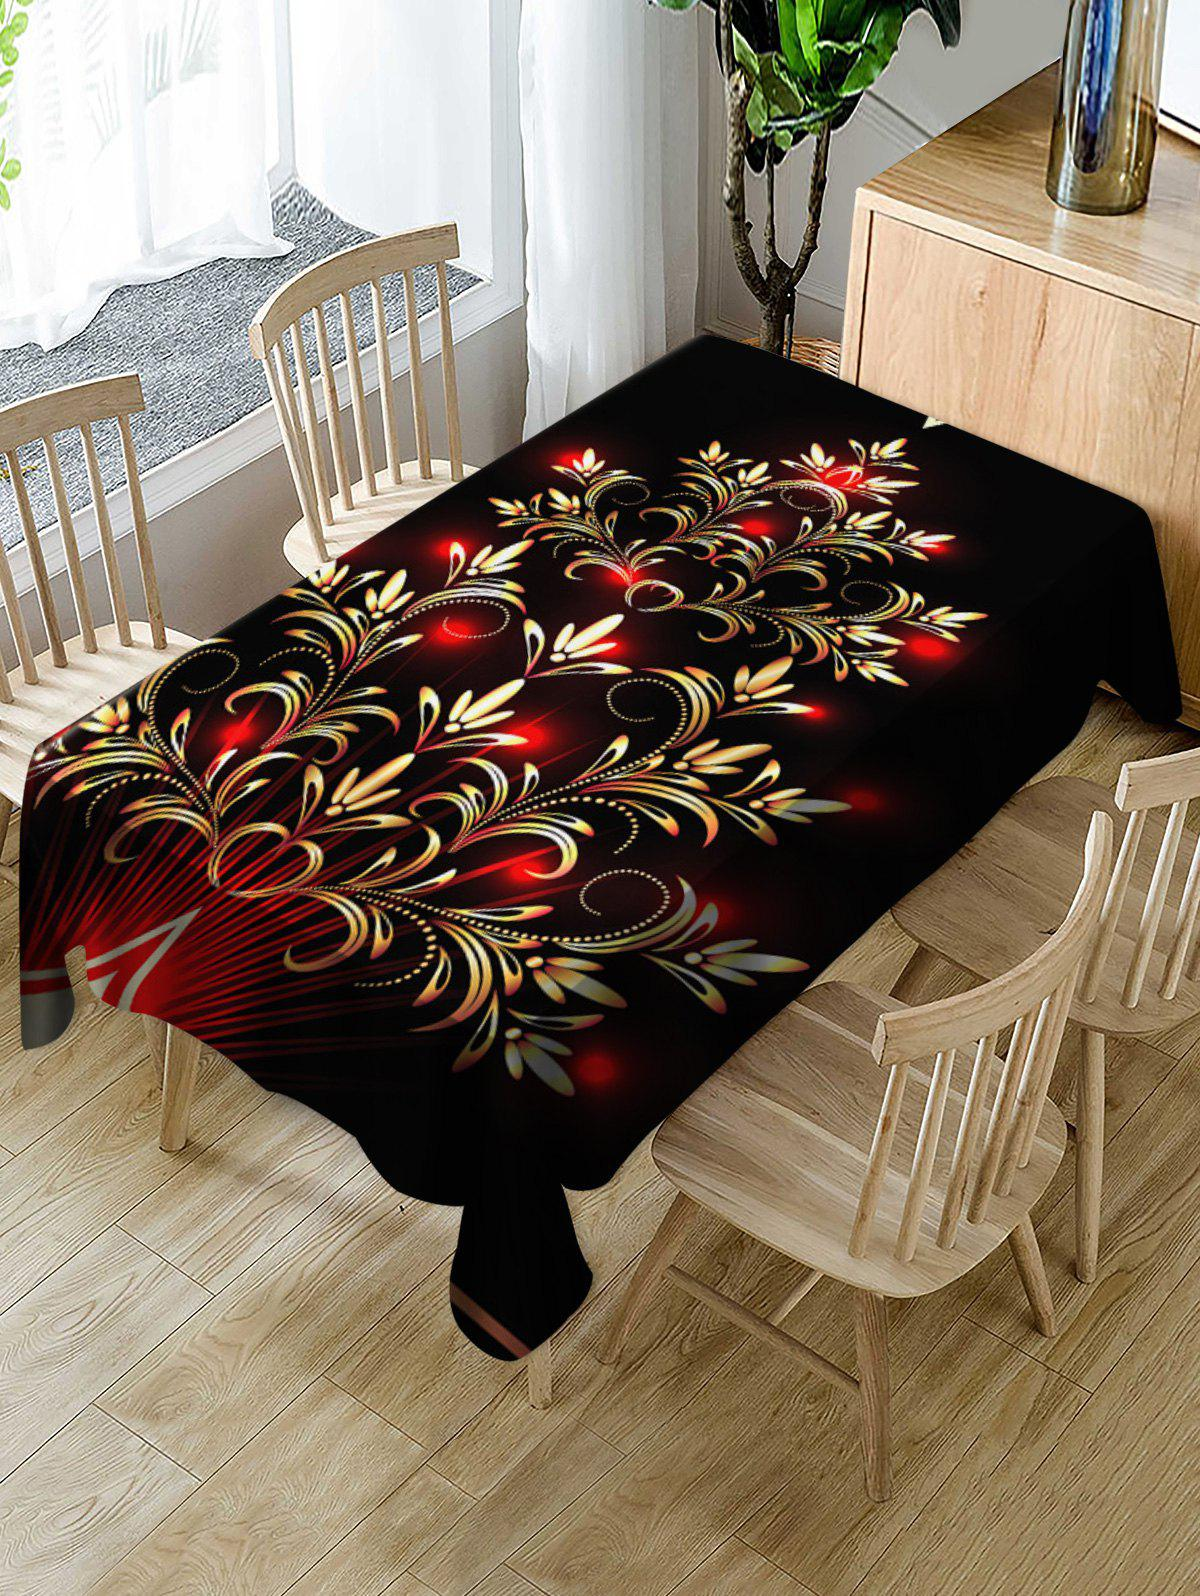 Chic Christmas Design Waterproof Table Cloth